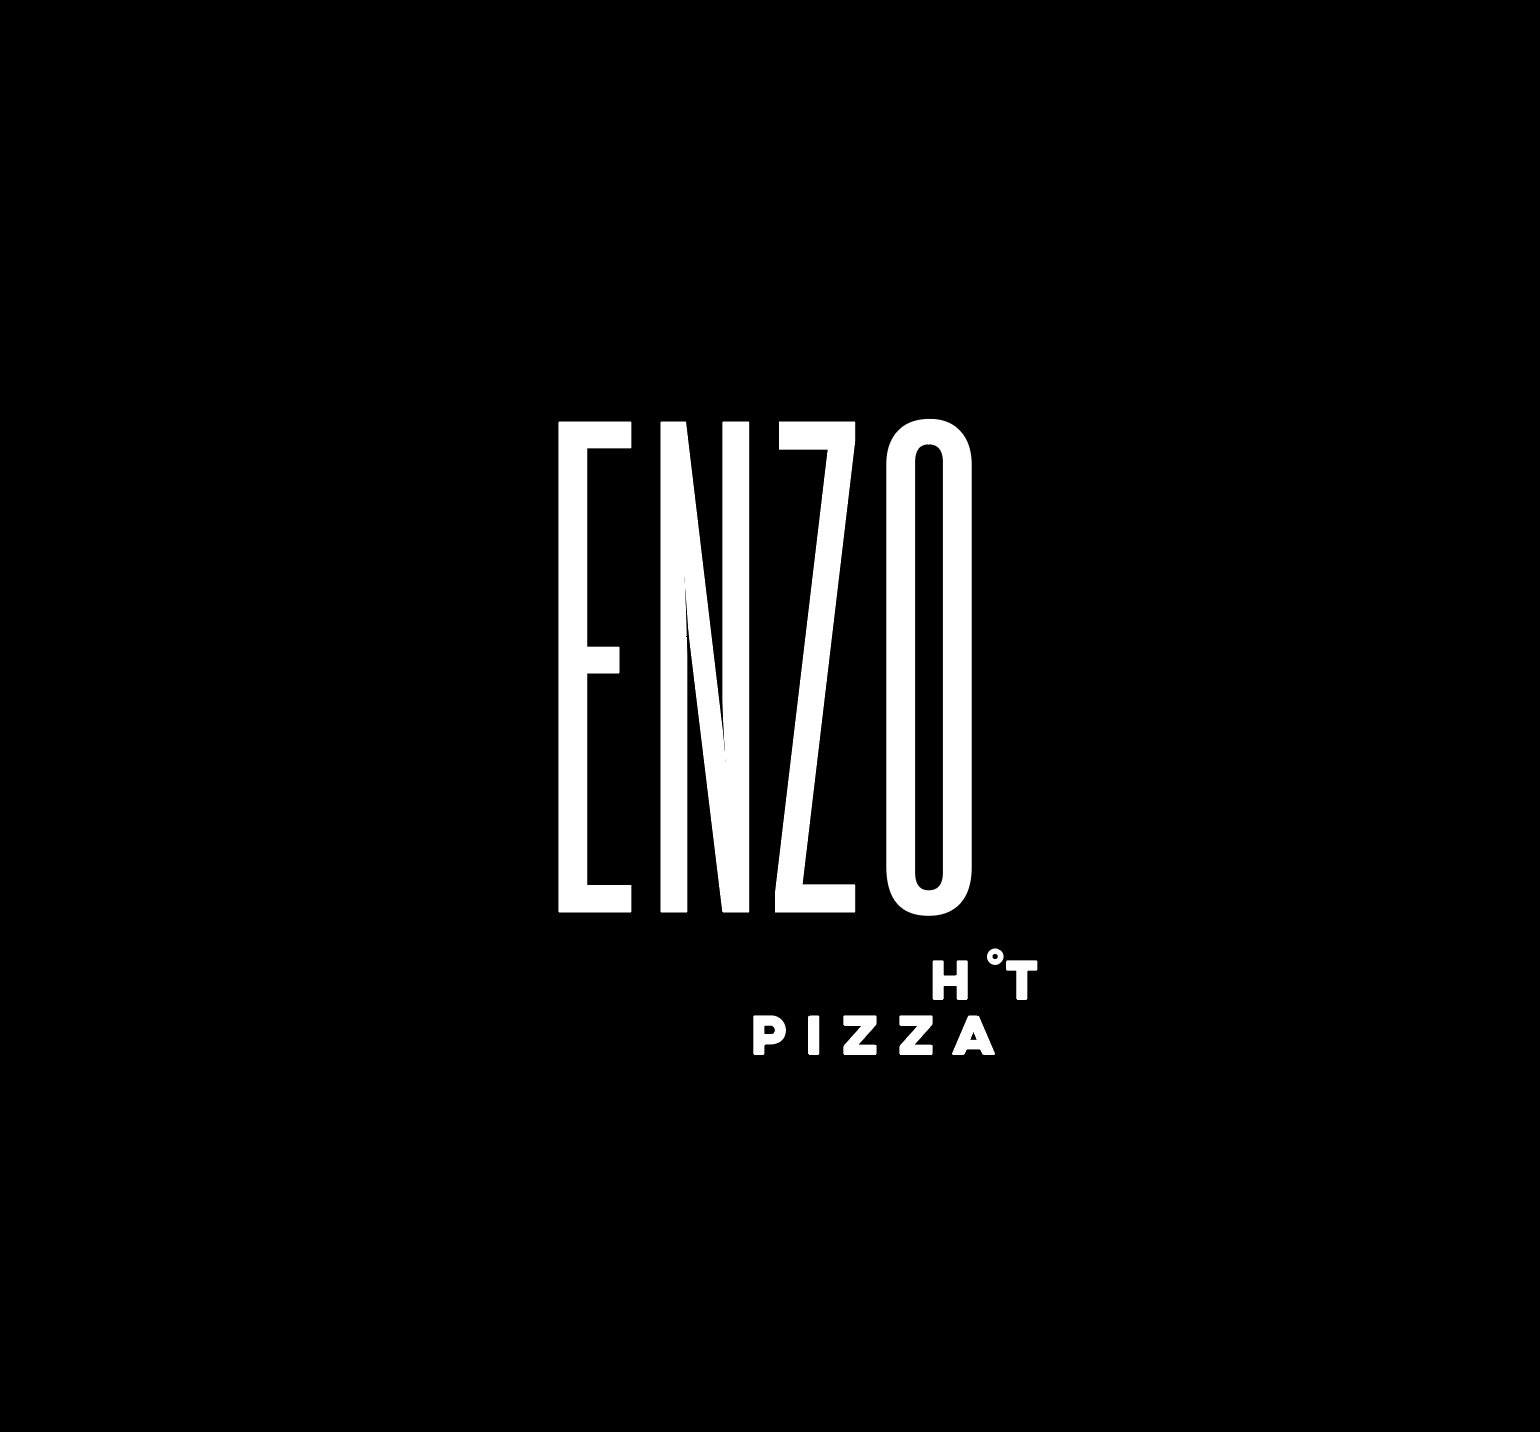 candybrophycreative - Enzo Hot Pizza Branding2.png